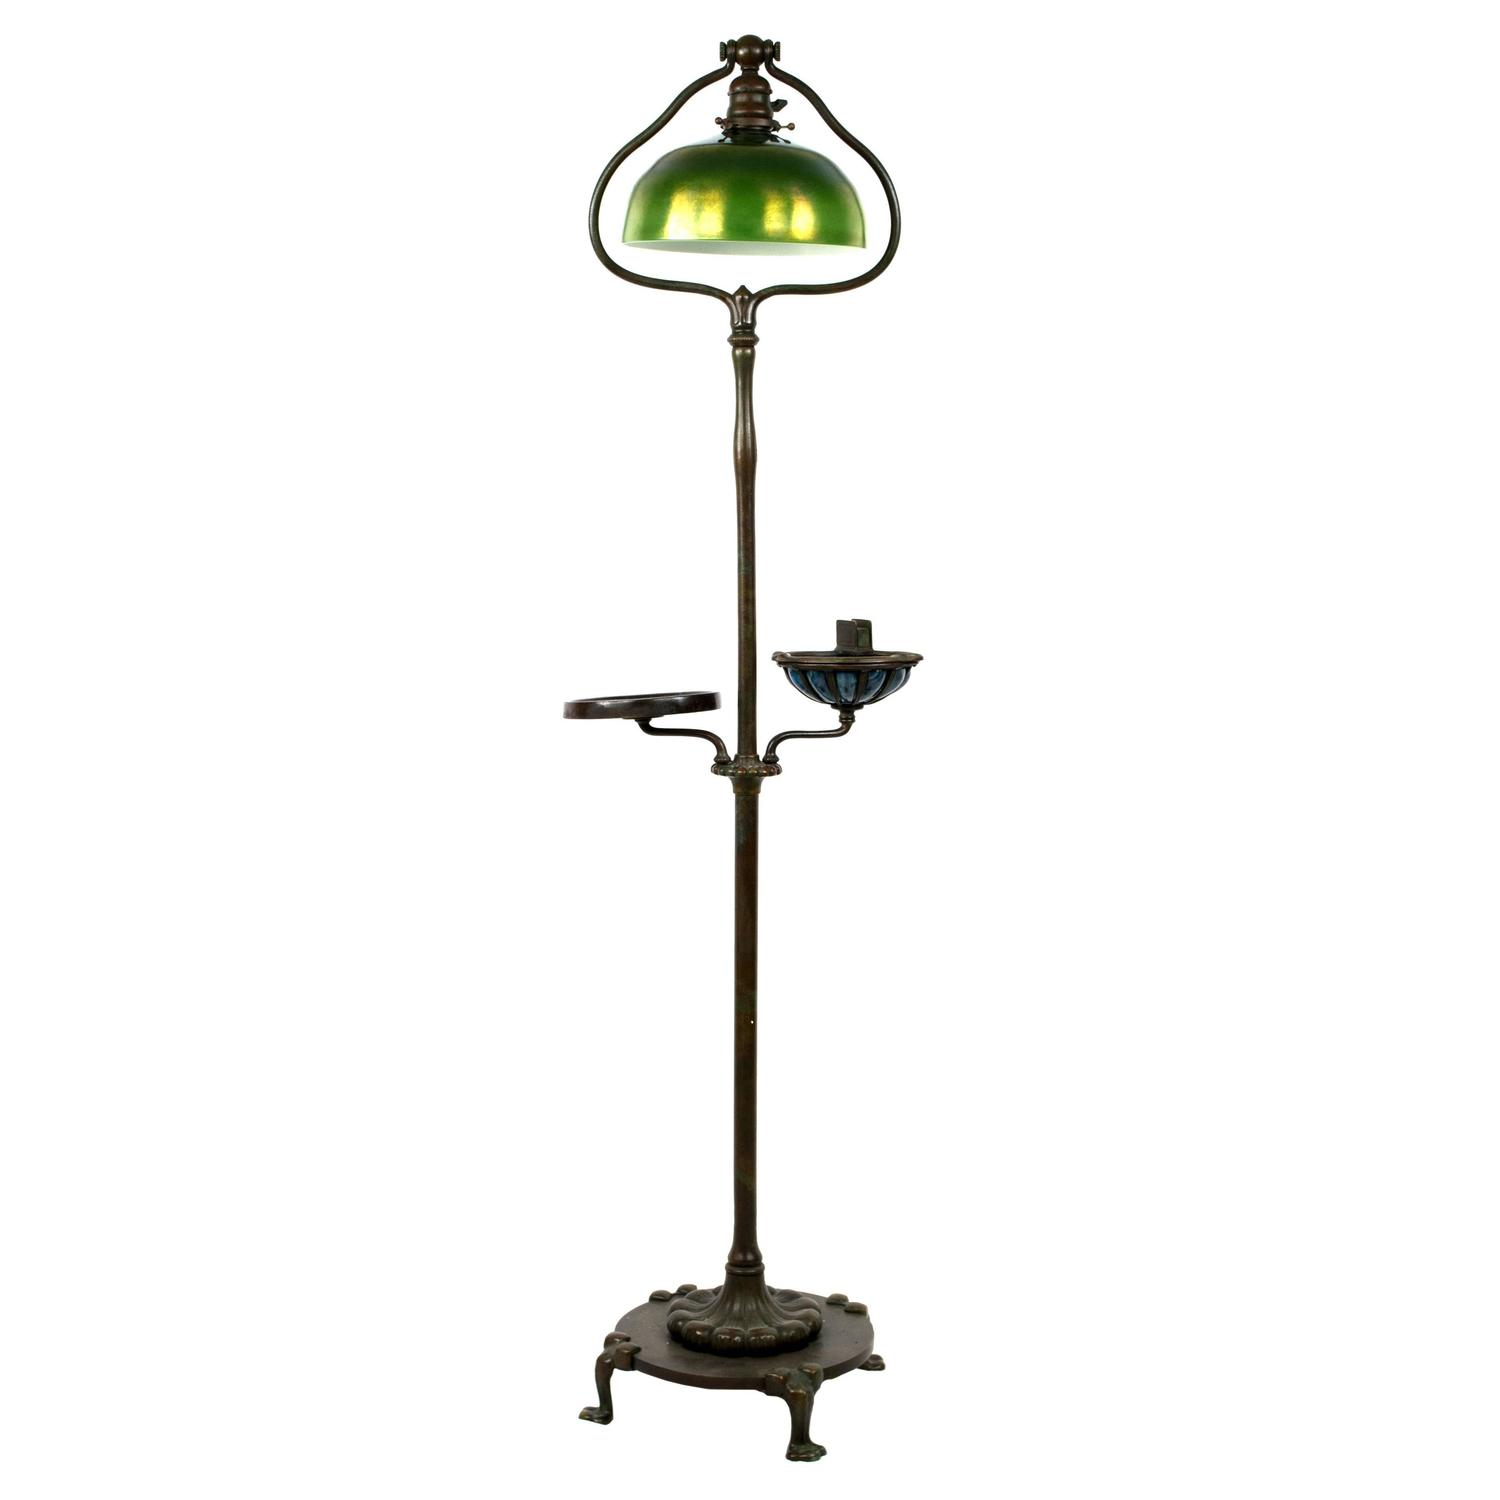 Tiffany Floor Lamp With Favrile Glass Shade At 1stdibs